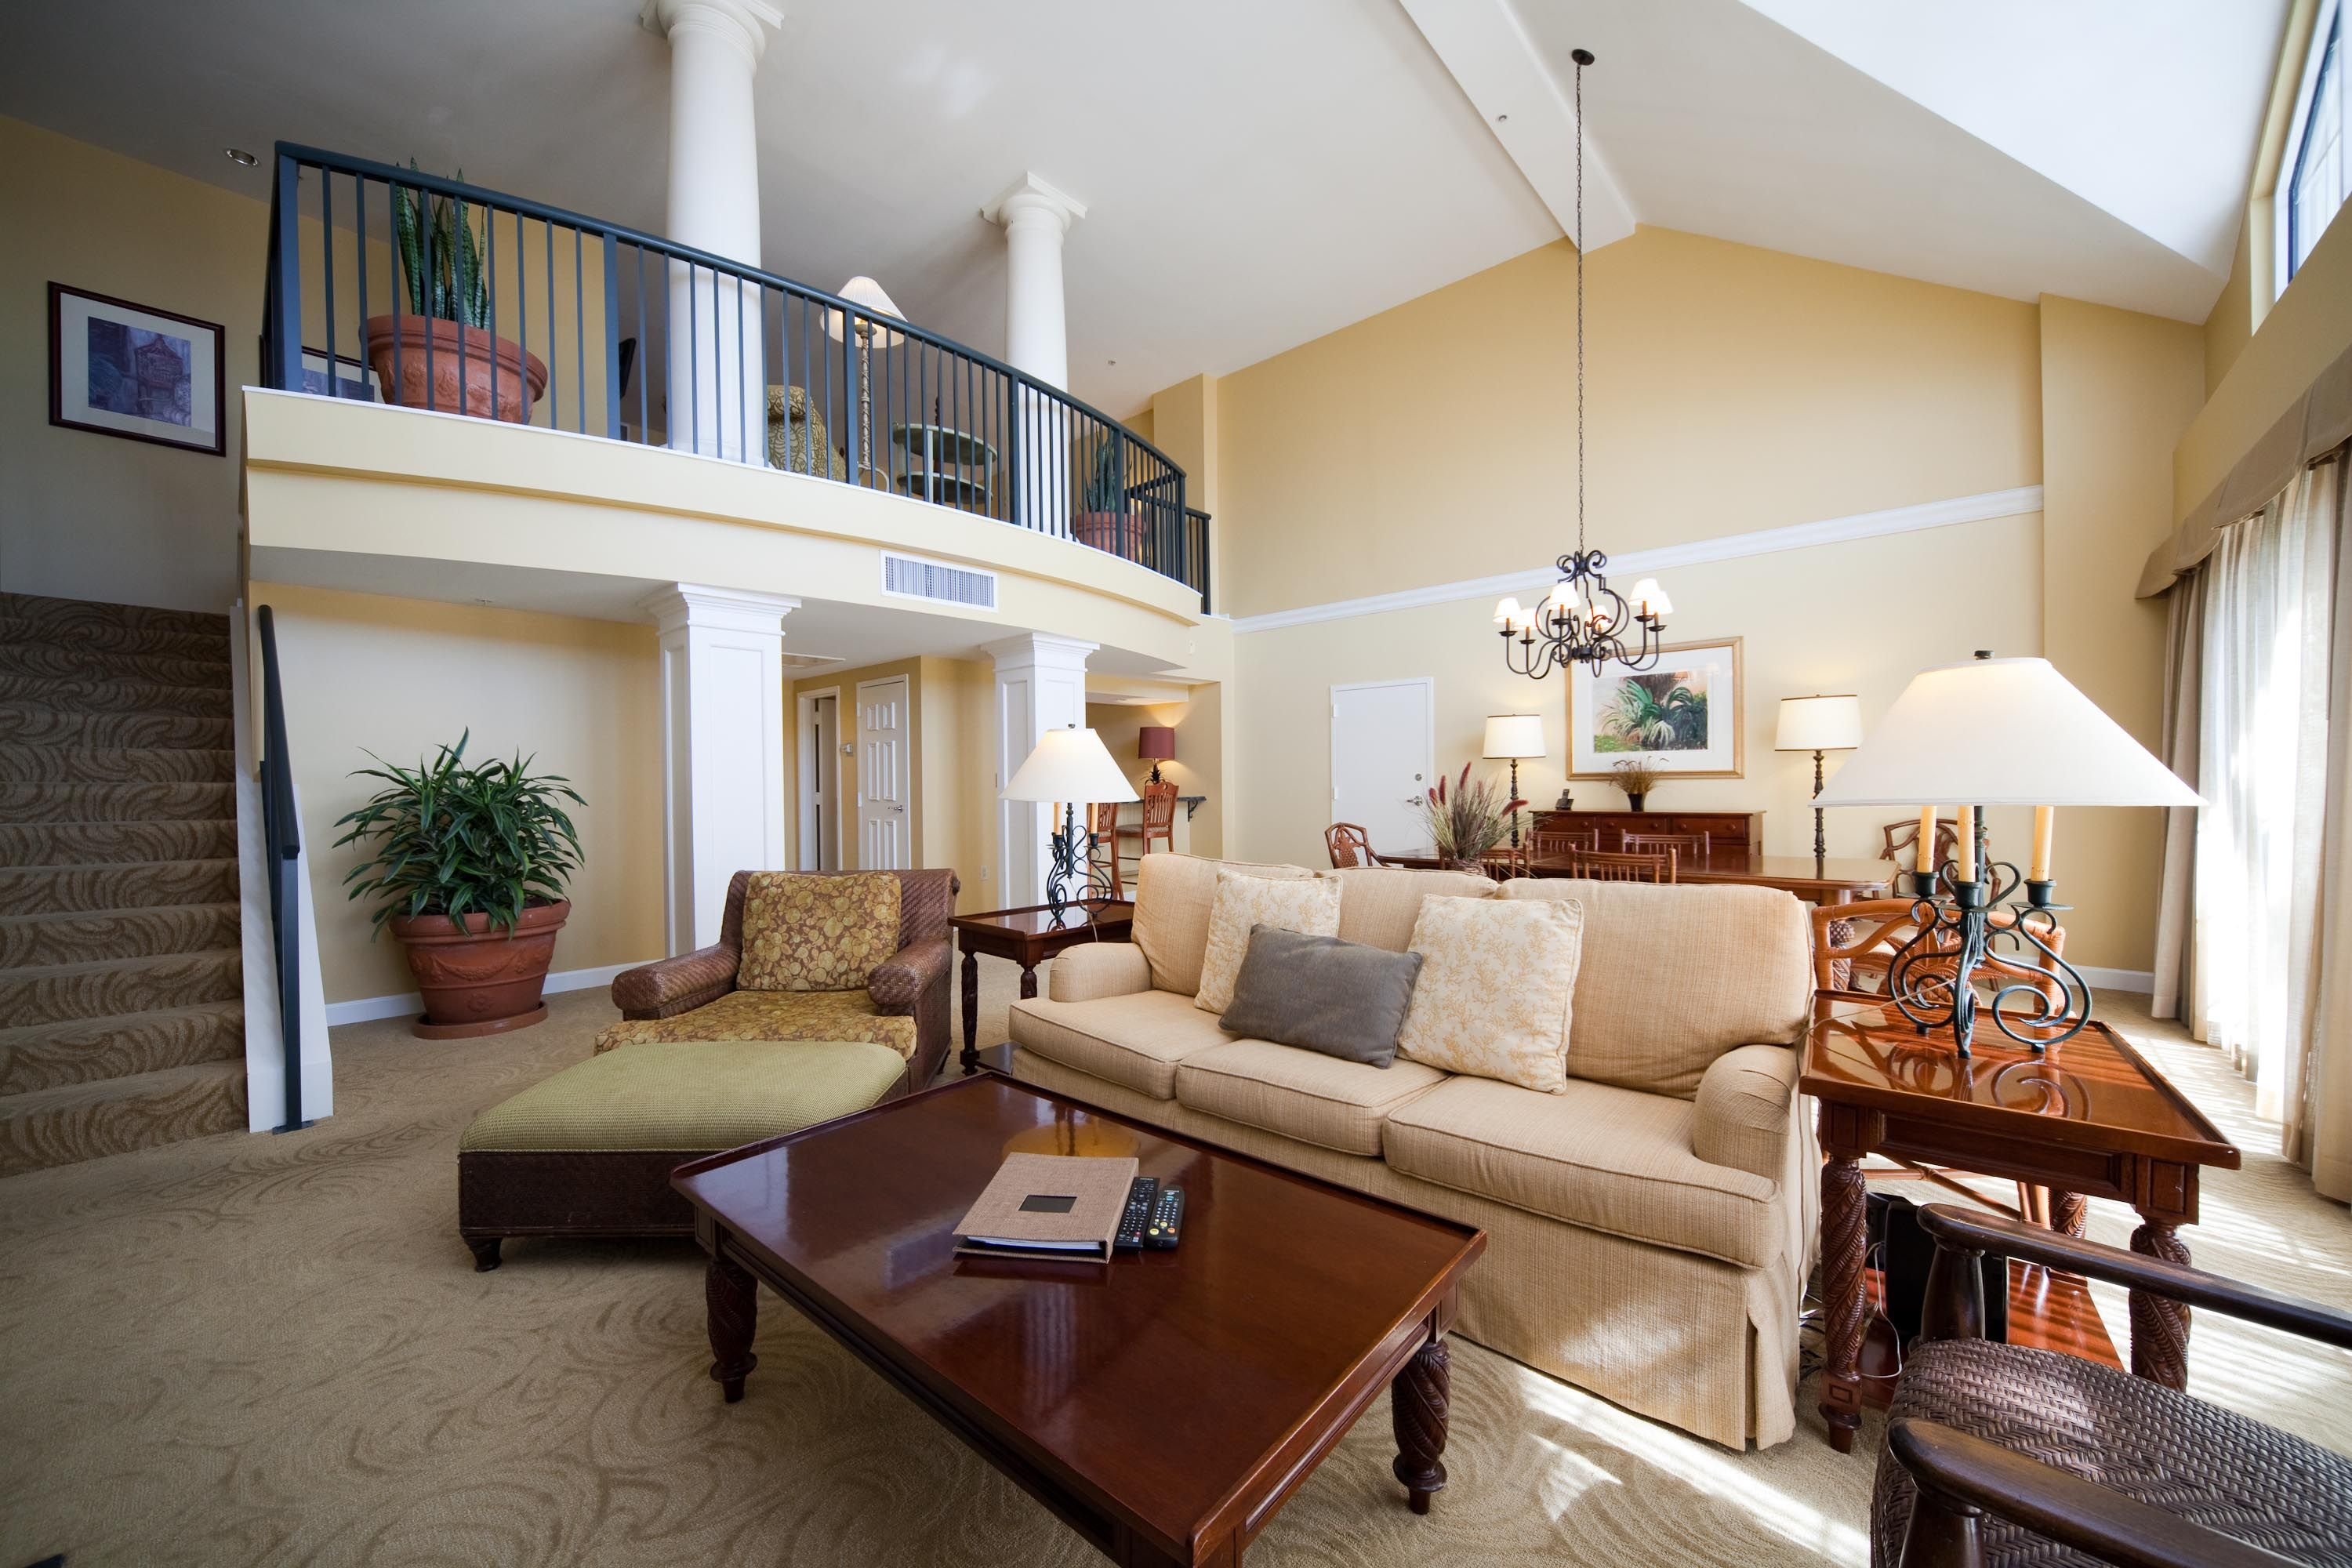 From beach house rentals to vacation homes  Wild Dunes Resort brings you  the best in Charleston  SC accommodations  This South Carolina beach resort. Wild Dunes Resort Accommodations   The Presidential Suite at the